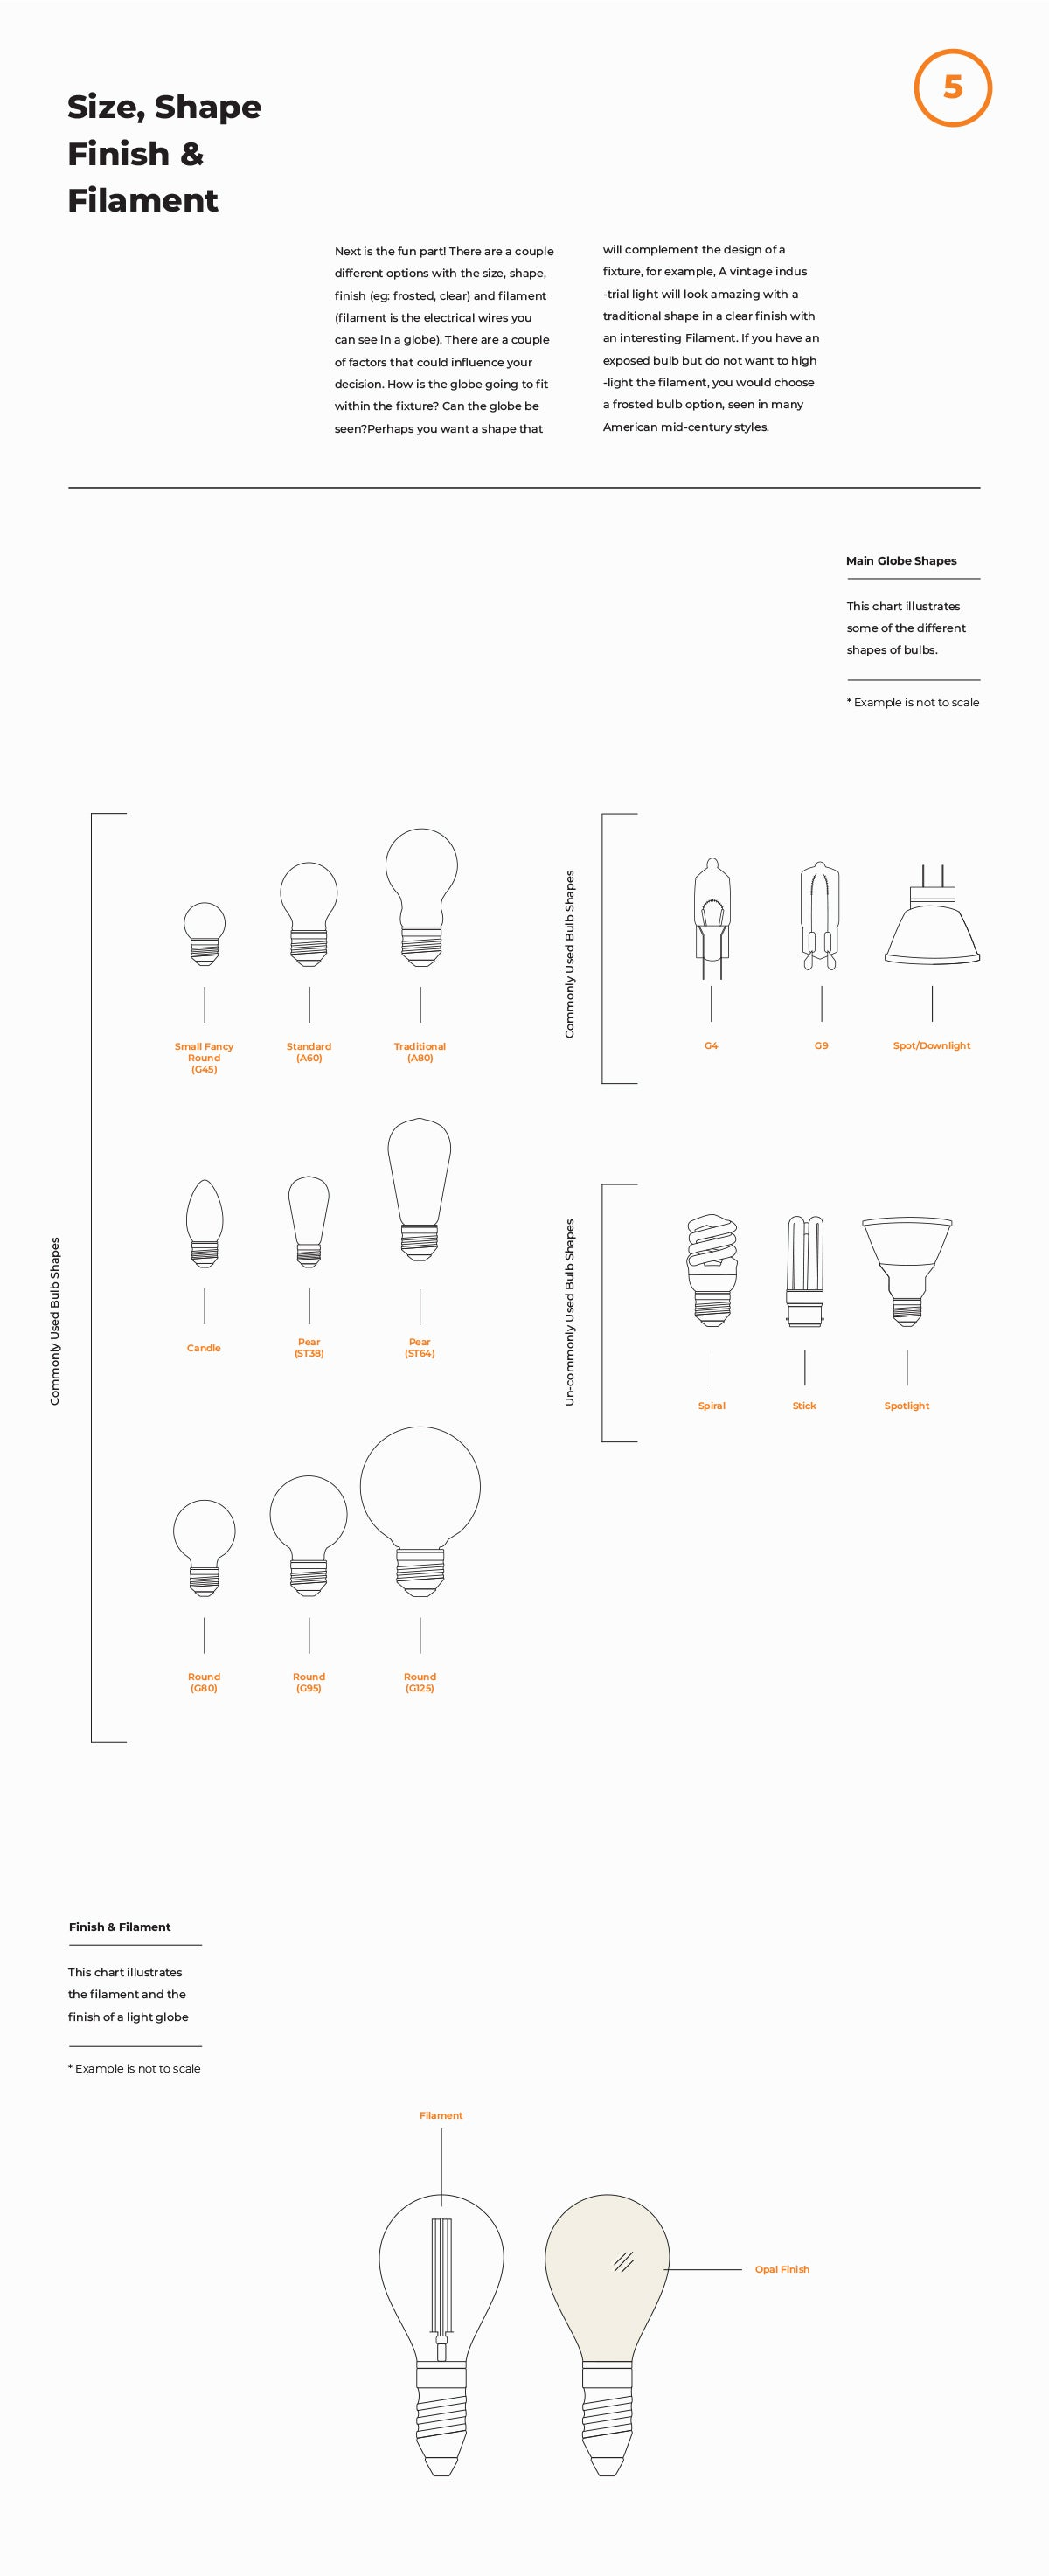 Size, Shape, Finish and Filament of your Light Bulb